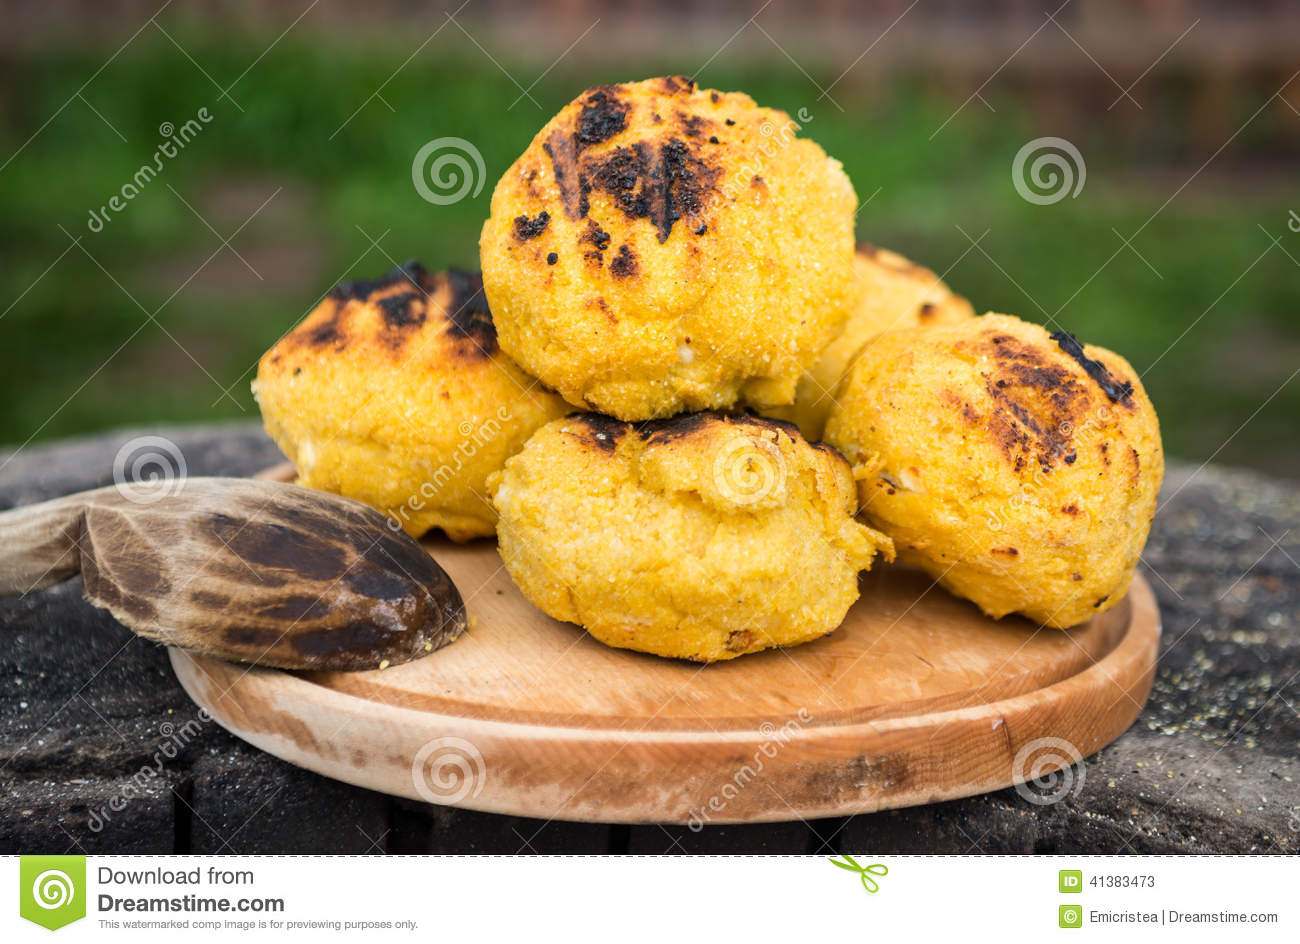 Bulz, romanian grilled polenta with cheese